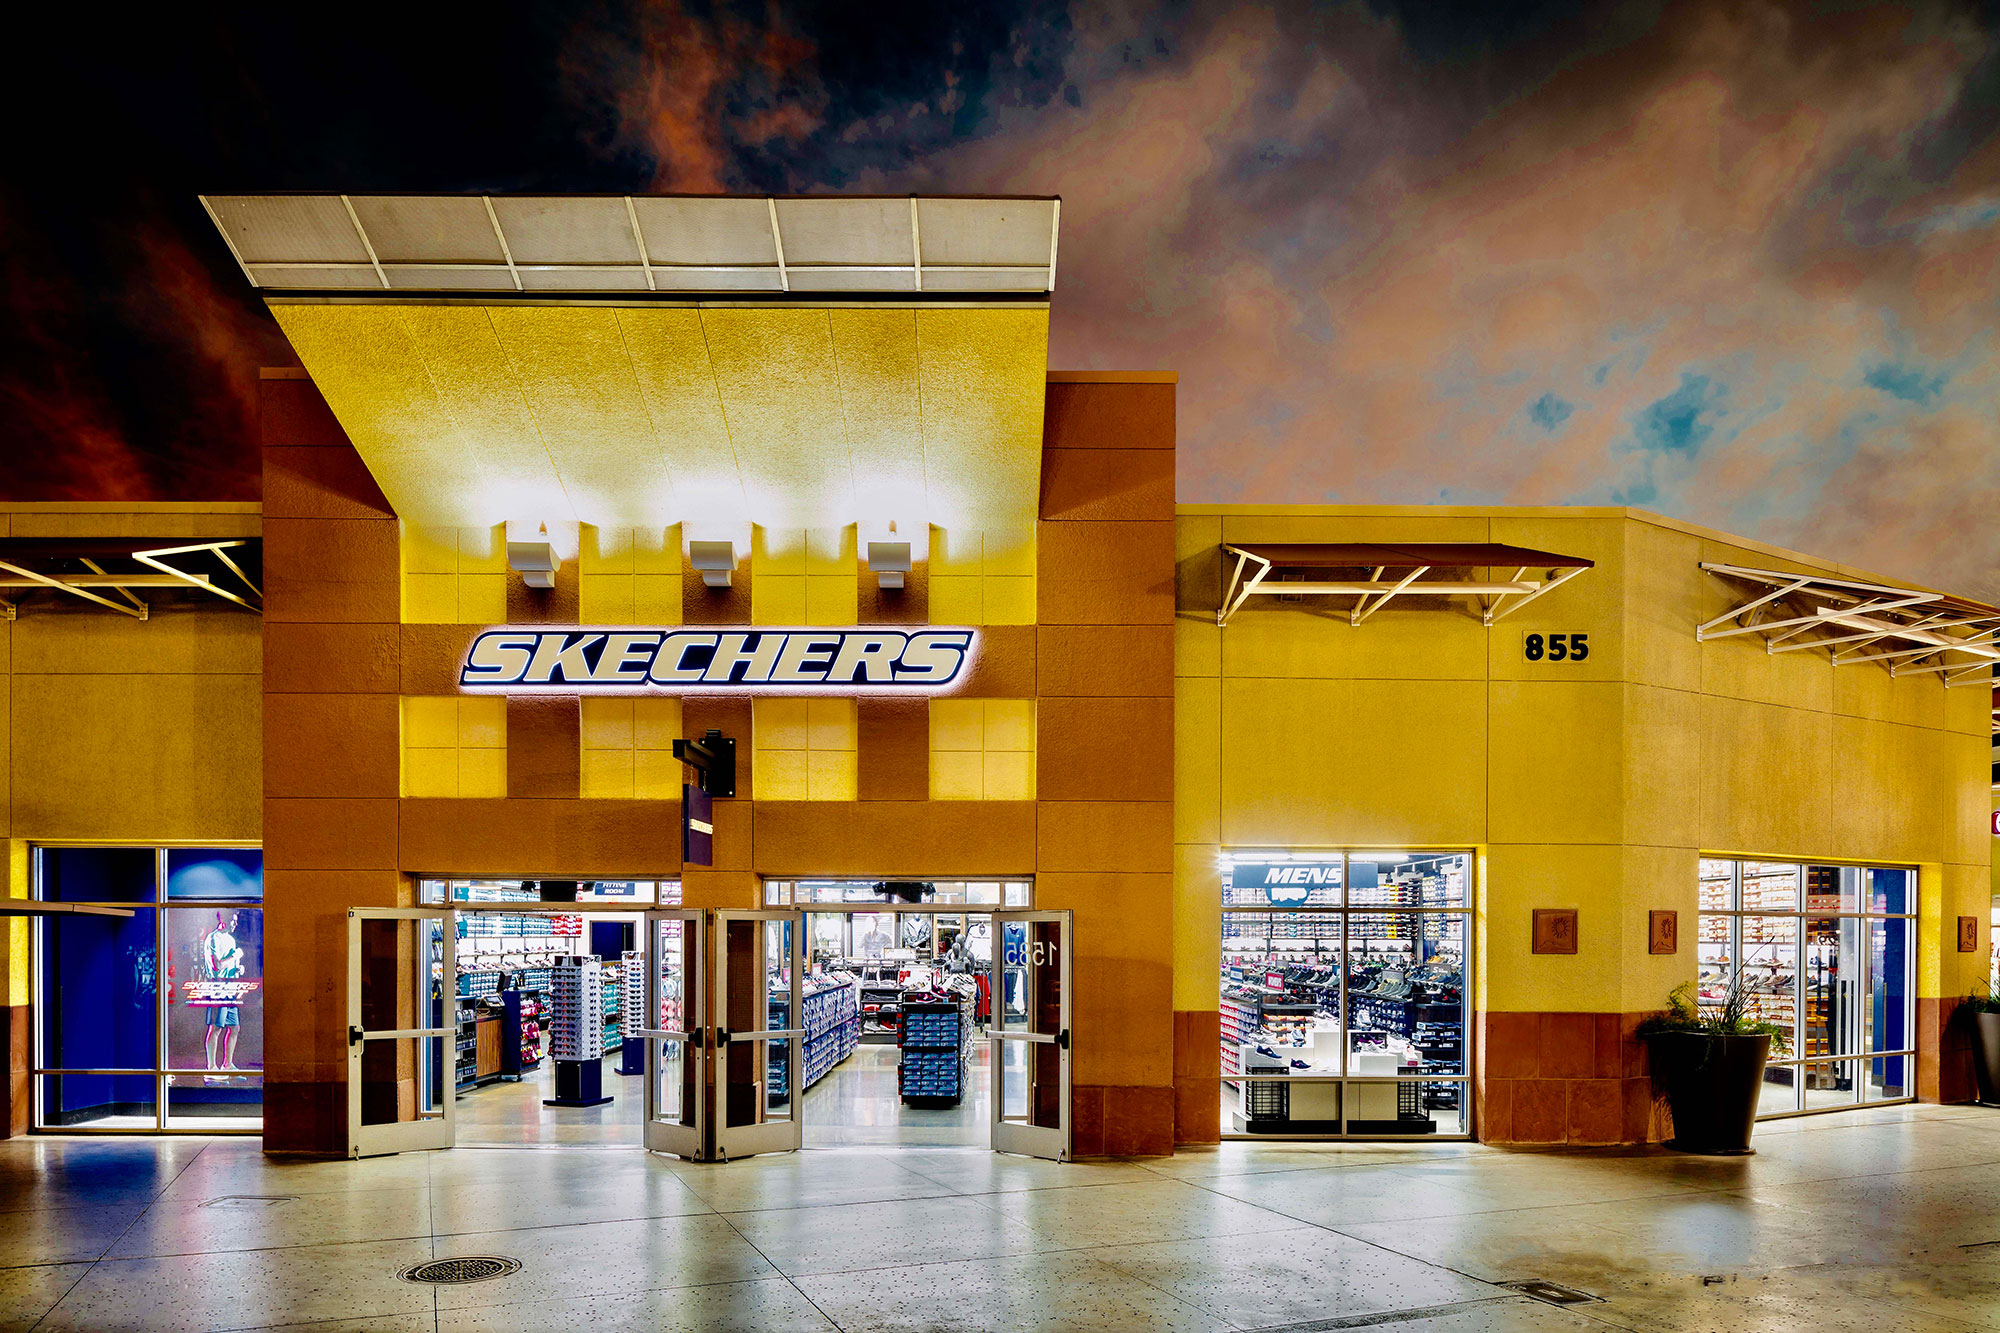 Skechers Shoe Outlet on W. Stacy Rd